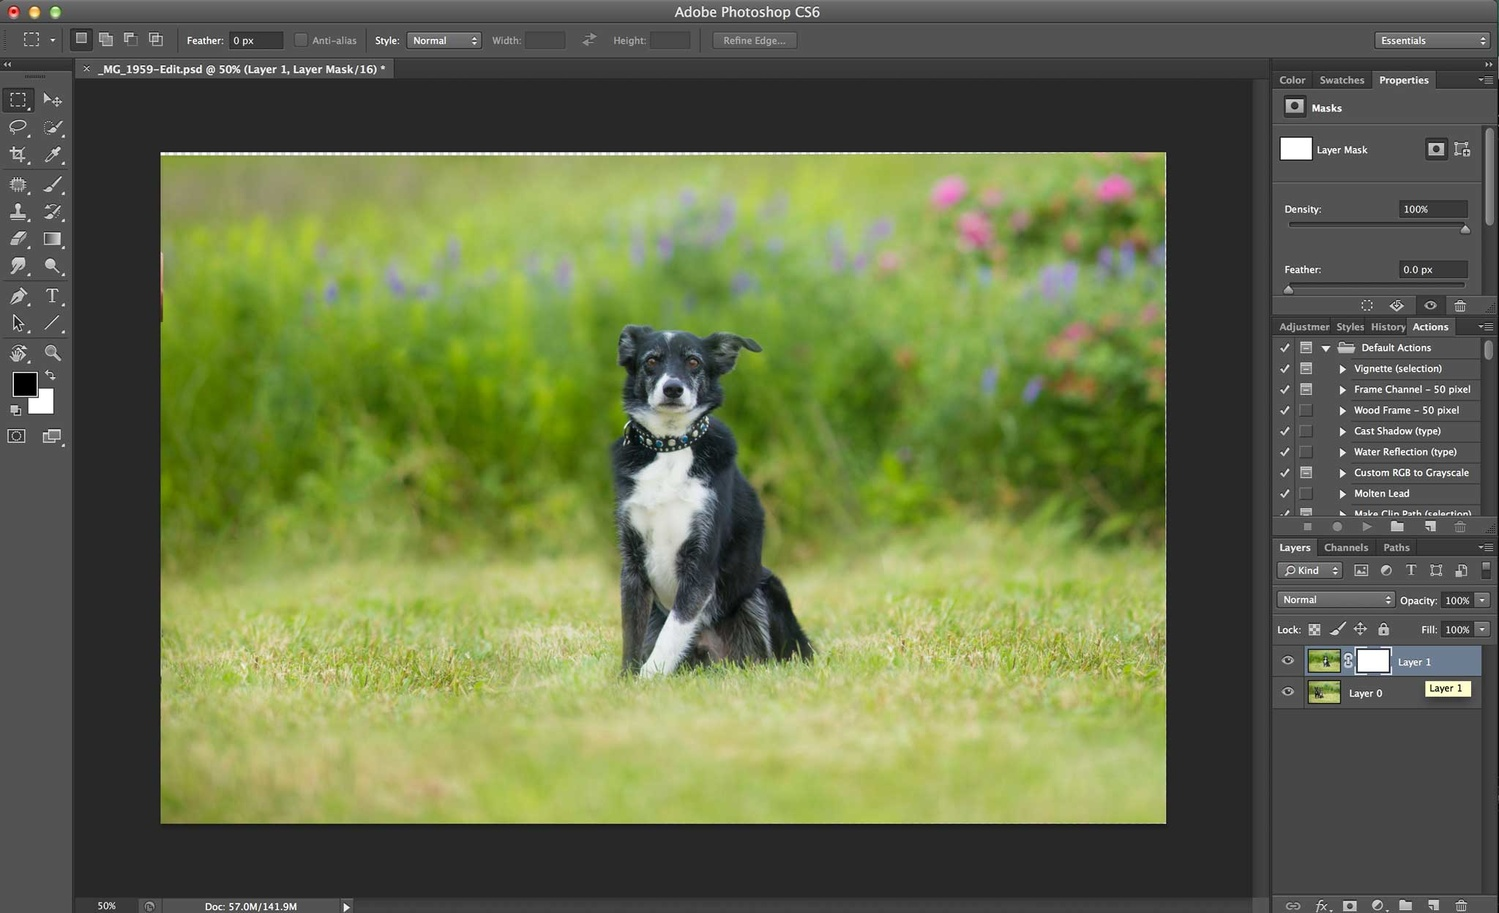 Compositing a dog group photo - Step 3